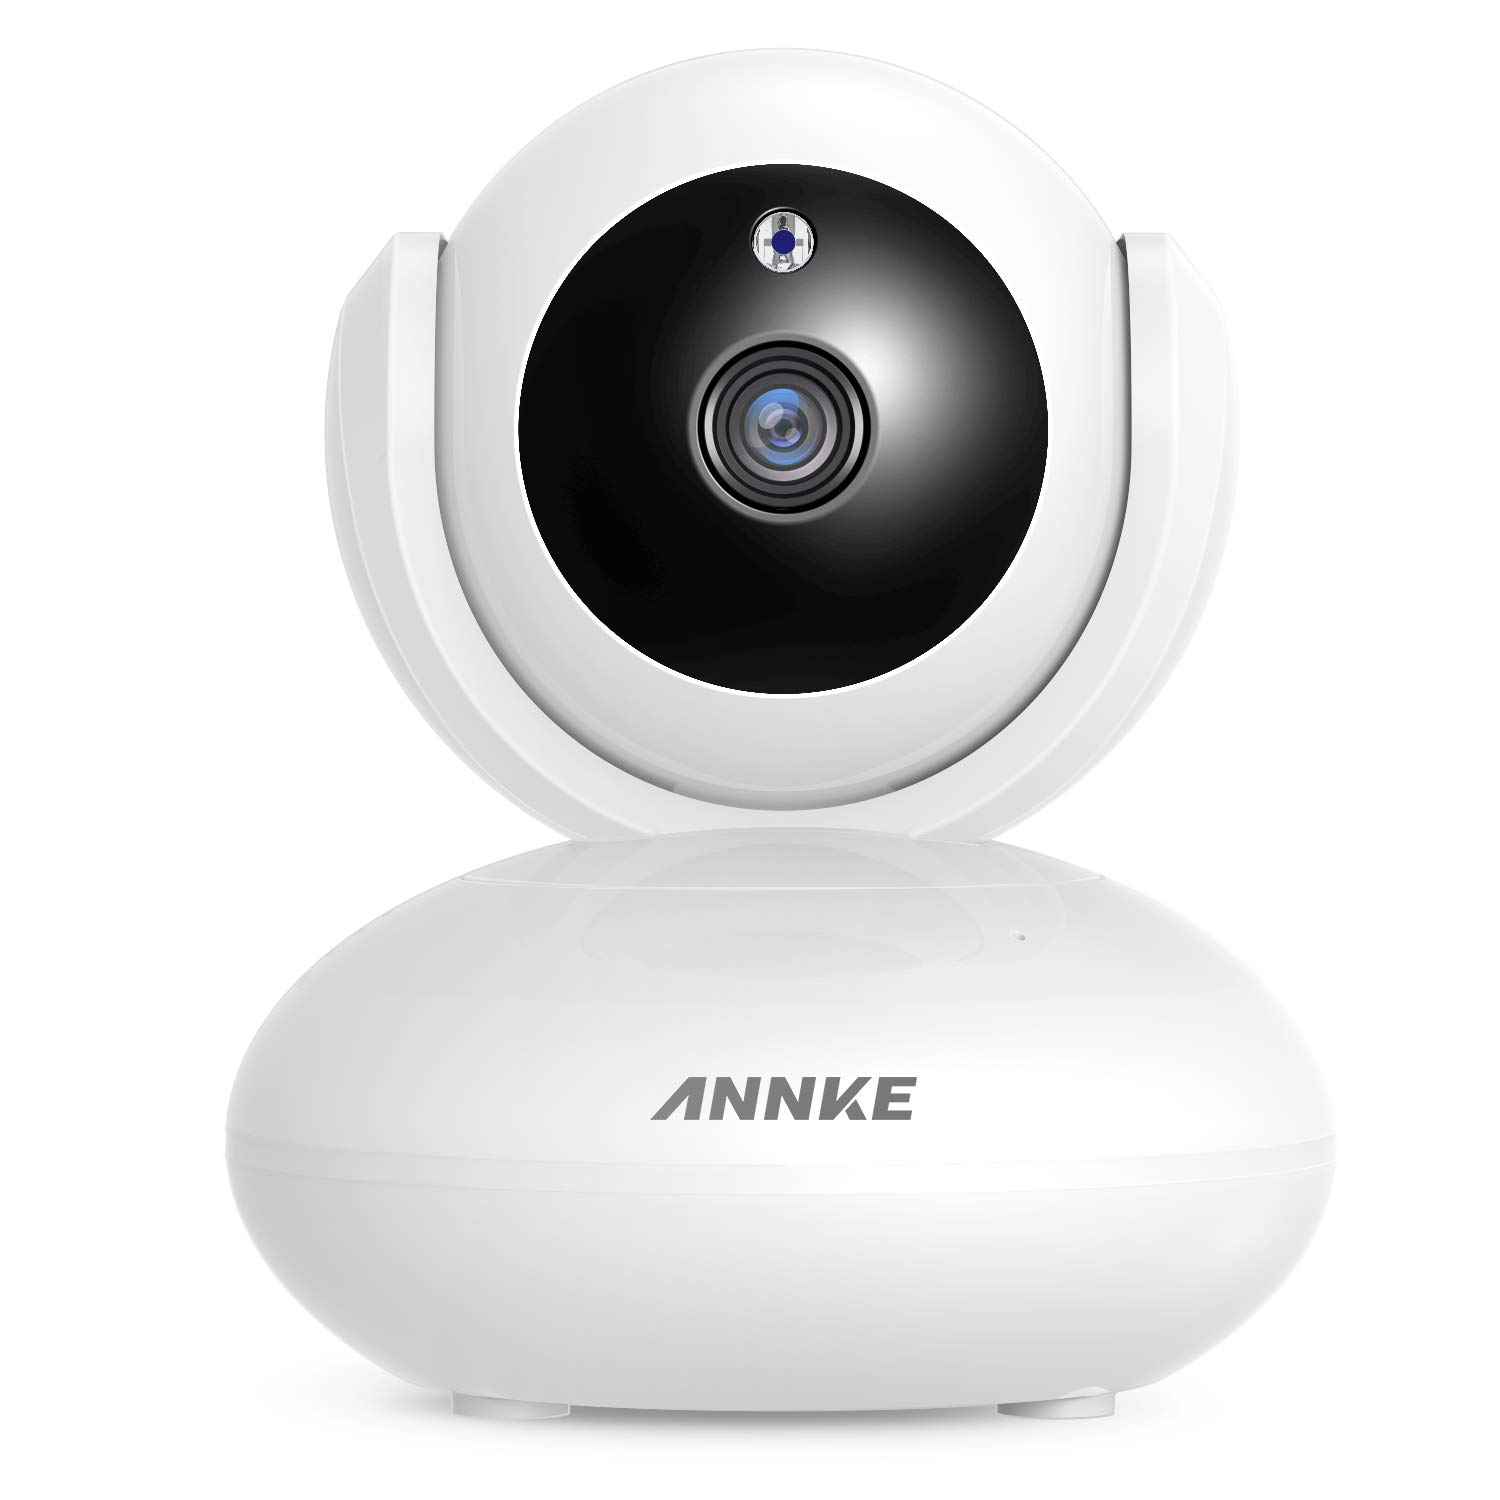 ANNKE 1080P IP Camera, Smart Wireless Pan/Tilt Home Security Camera, APP Alarm Push, Two-Way Audio, Support 64GB TF Card, Cloud Storage Available, Work with Alexa(Echo Show/Echo Spot) by ANNKE